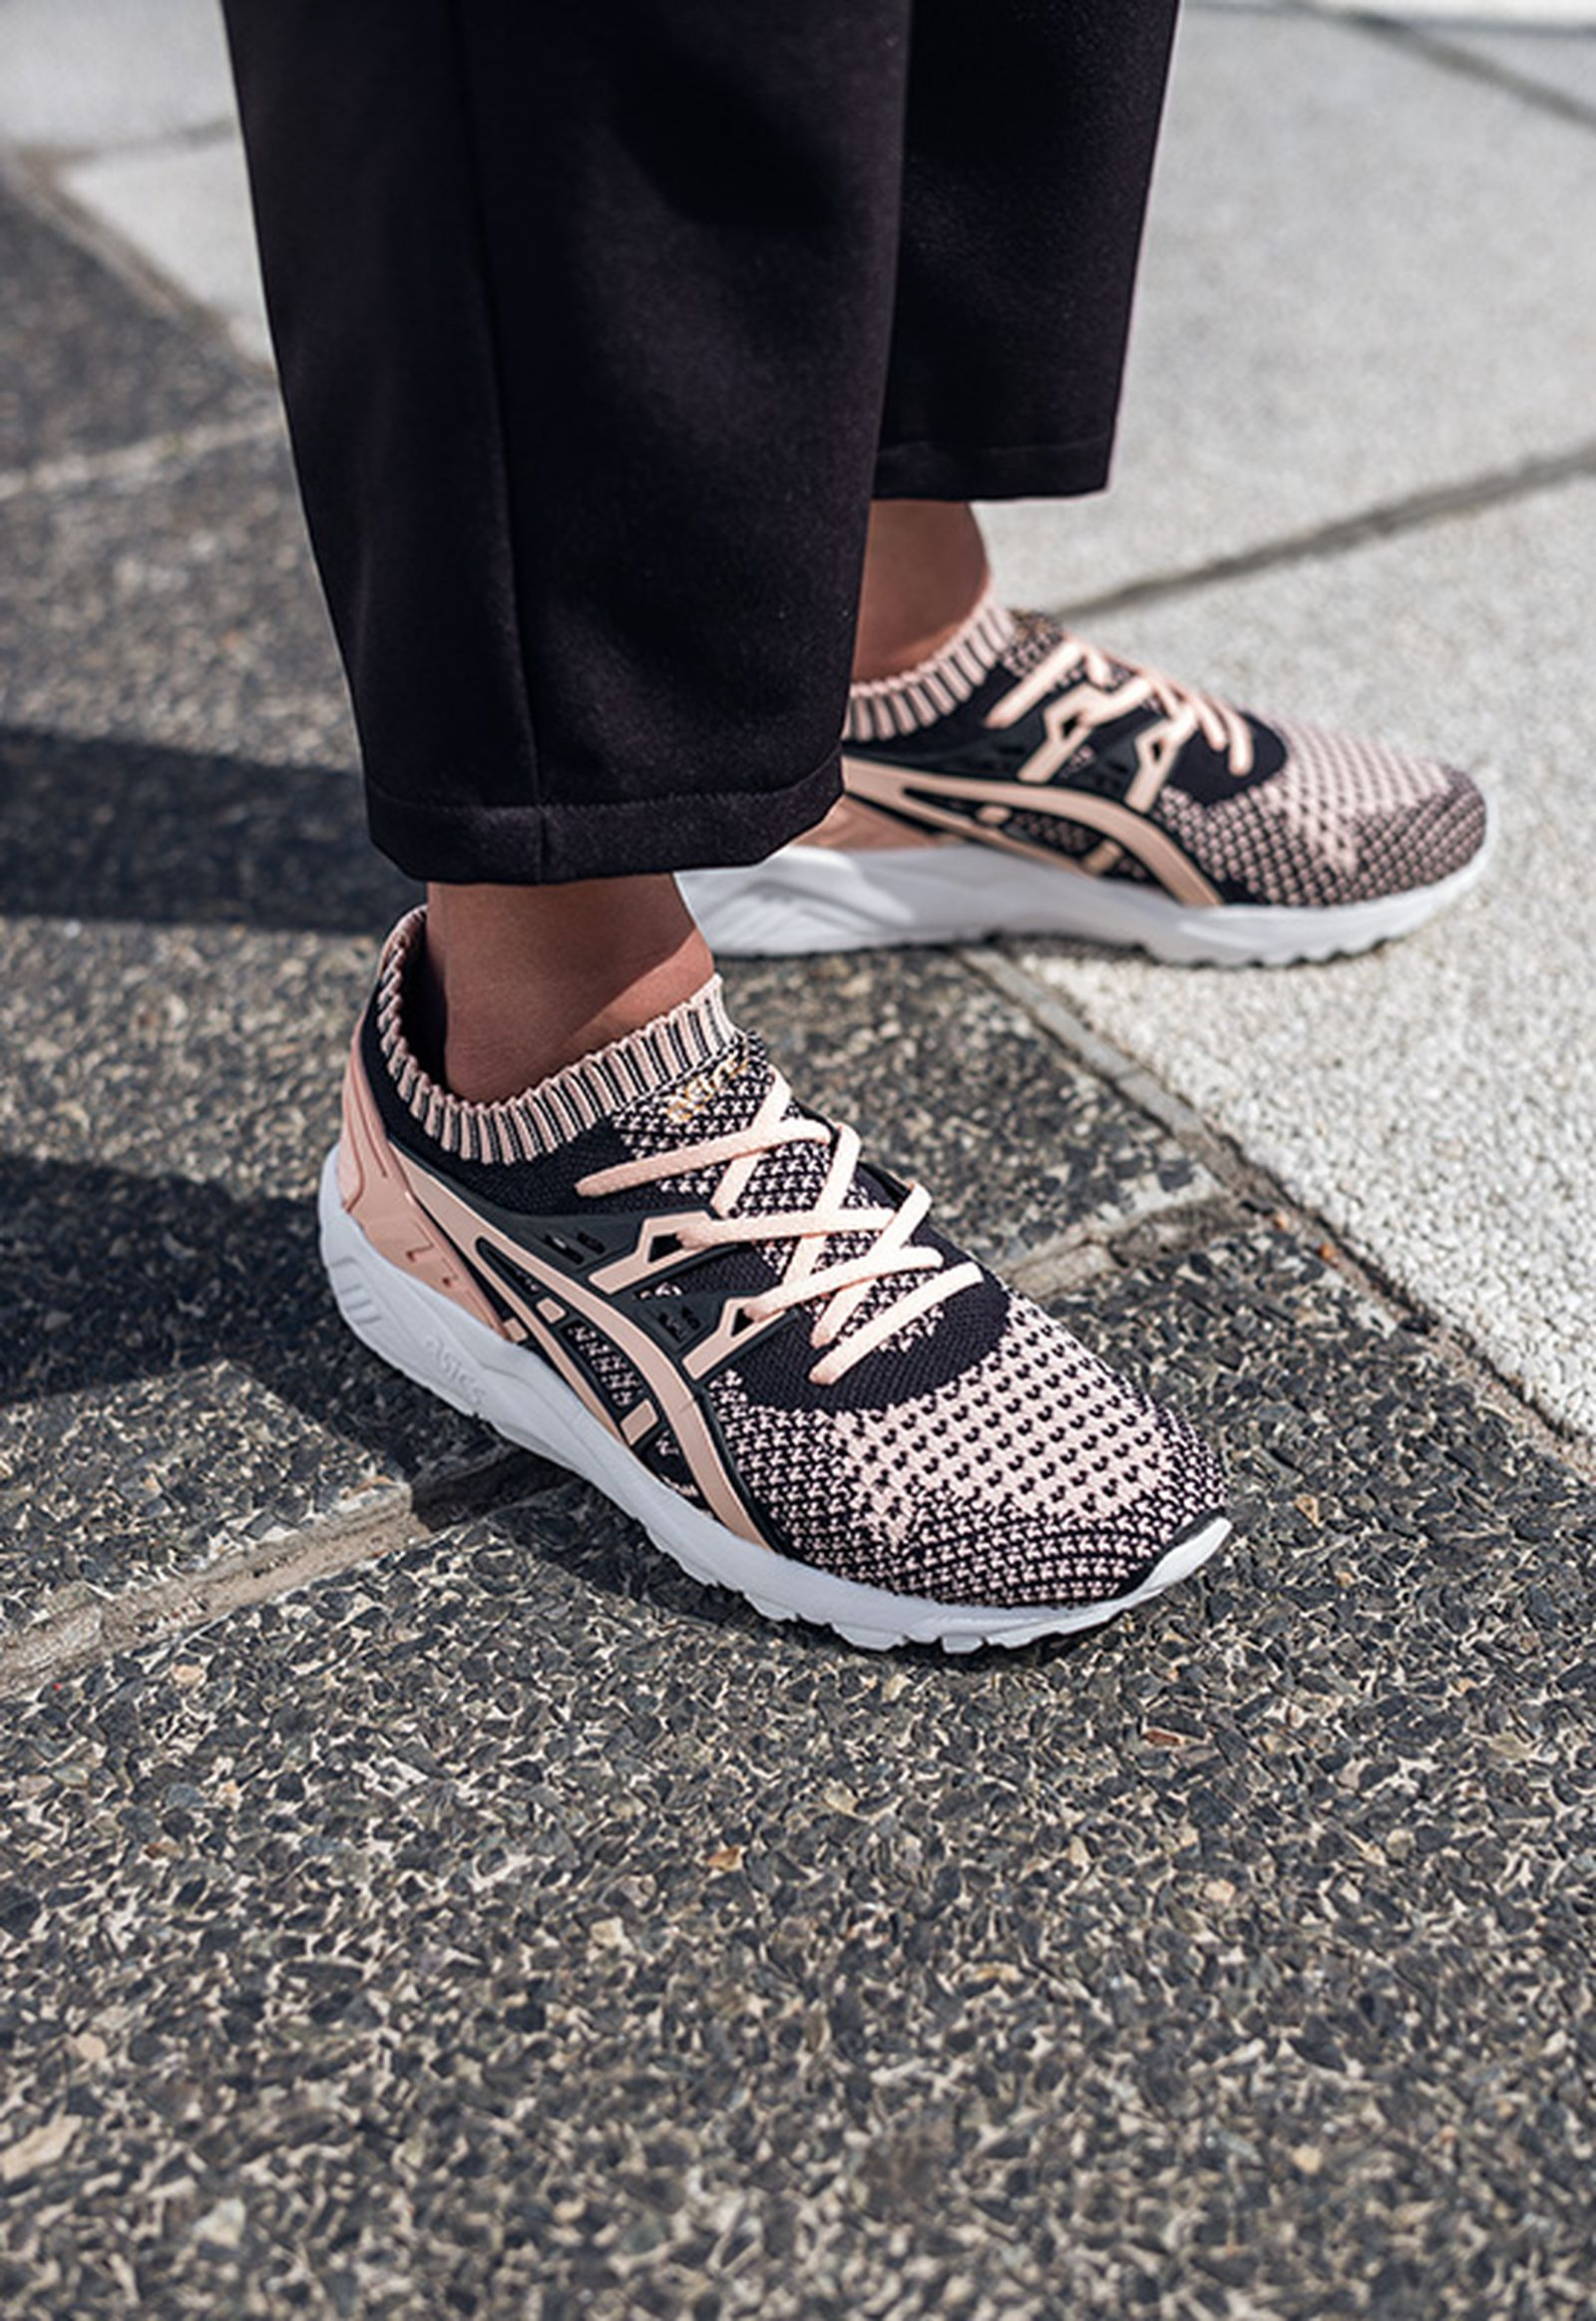 asics-tiger-gel-kayano-trainer-knit-colors-02